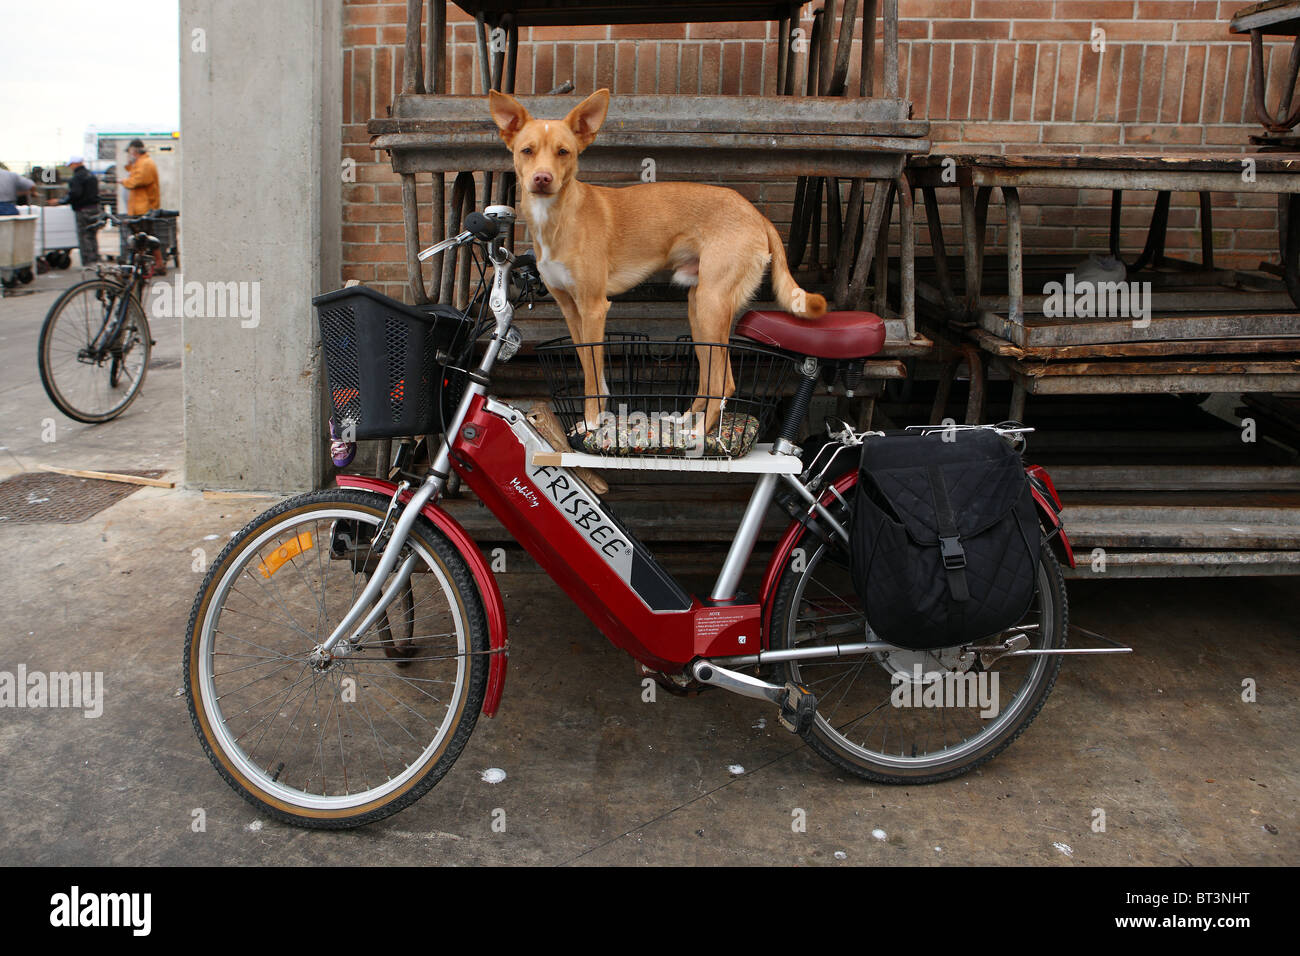 dog, dog on a motorcycle - Stock Image